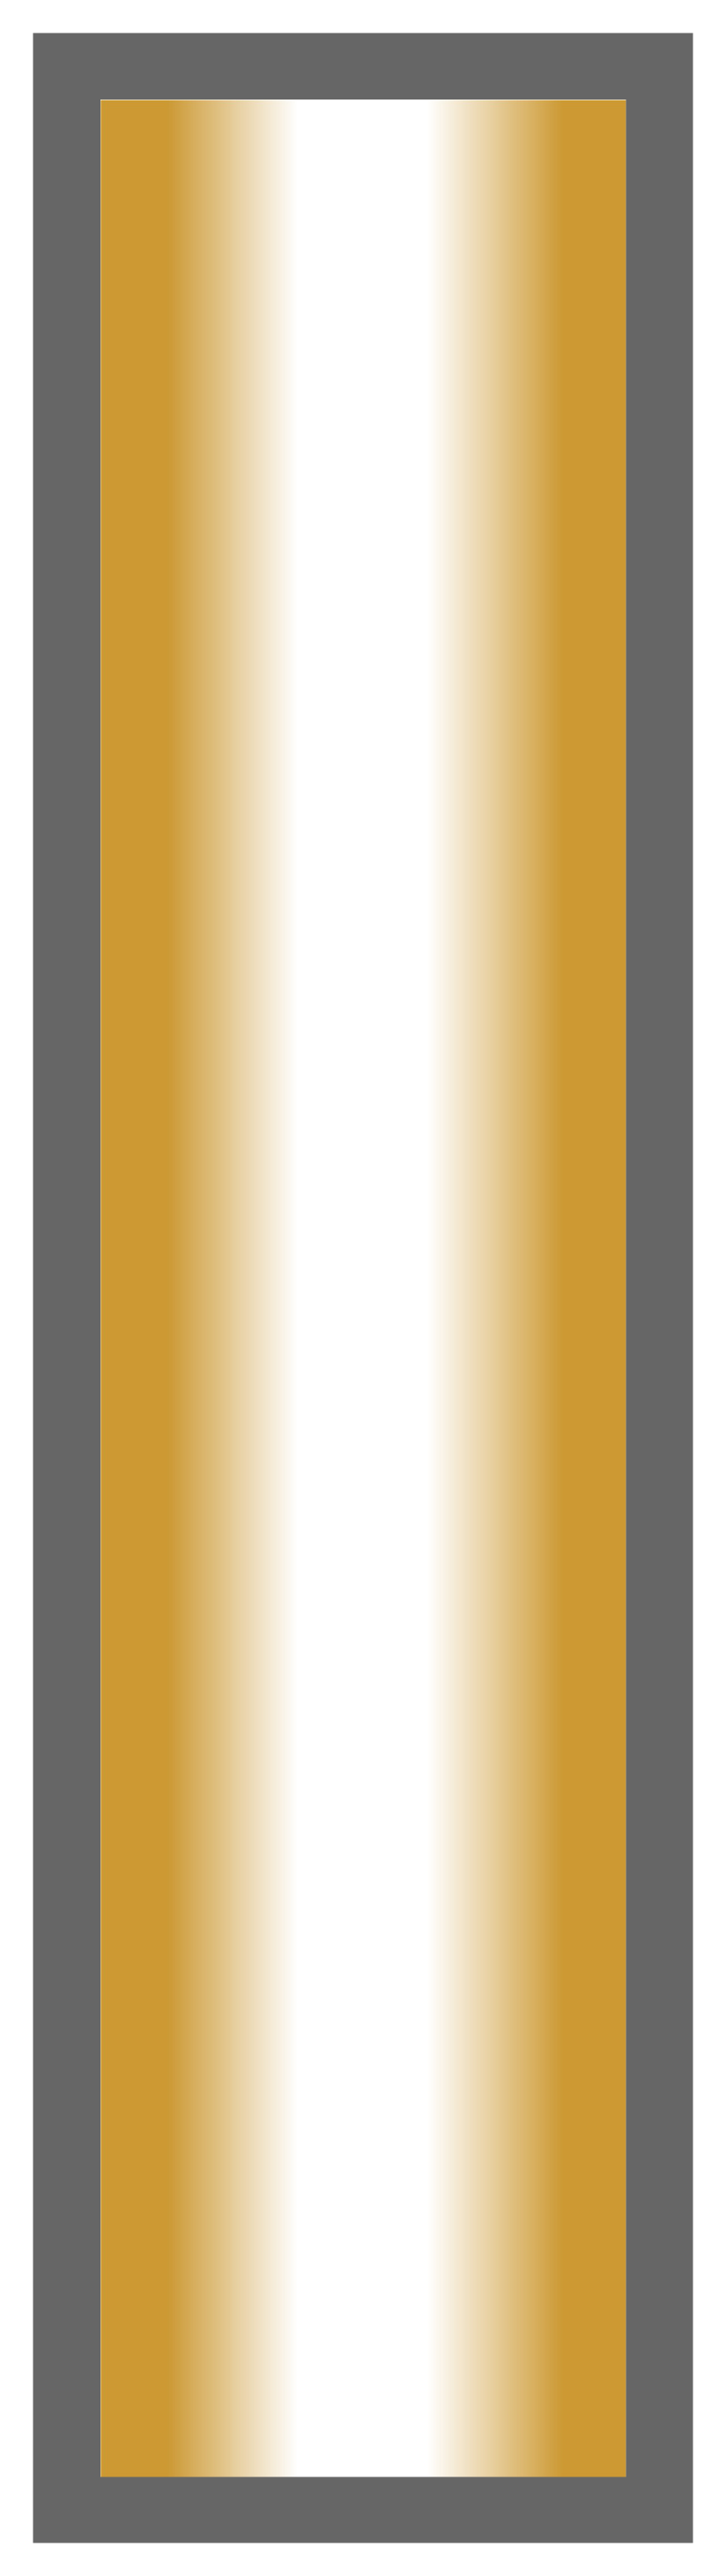 Gold-White-Gold Ombre Stripe